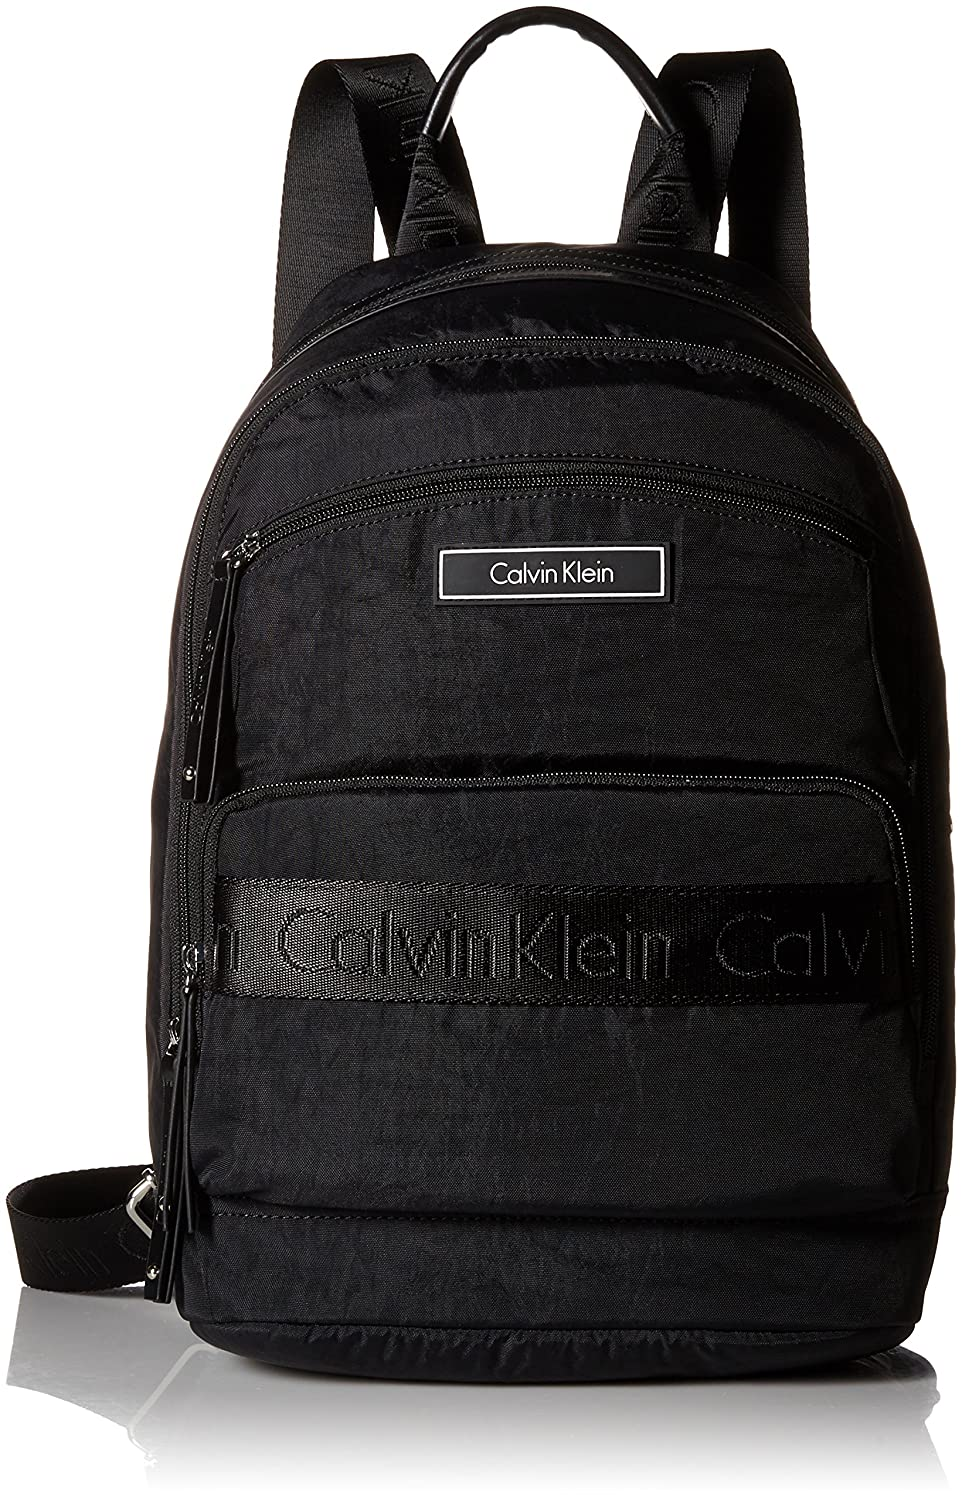 d027bea0e Calvin Klein Red Nylon Backpack | Building Materials Bargain Center